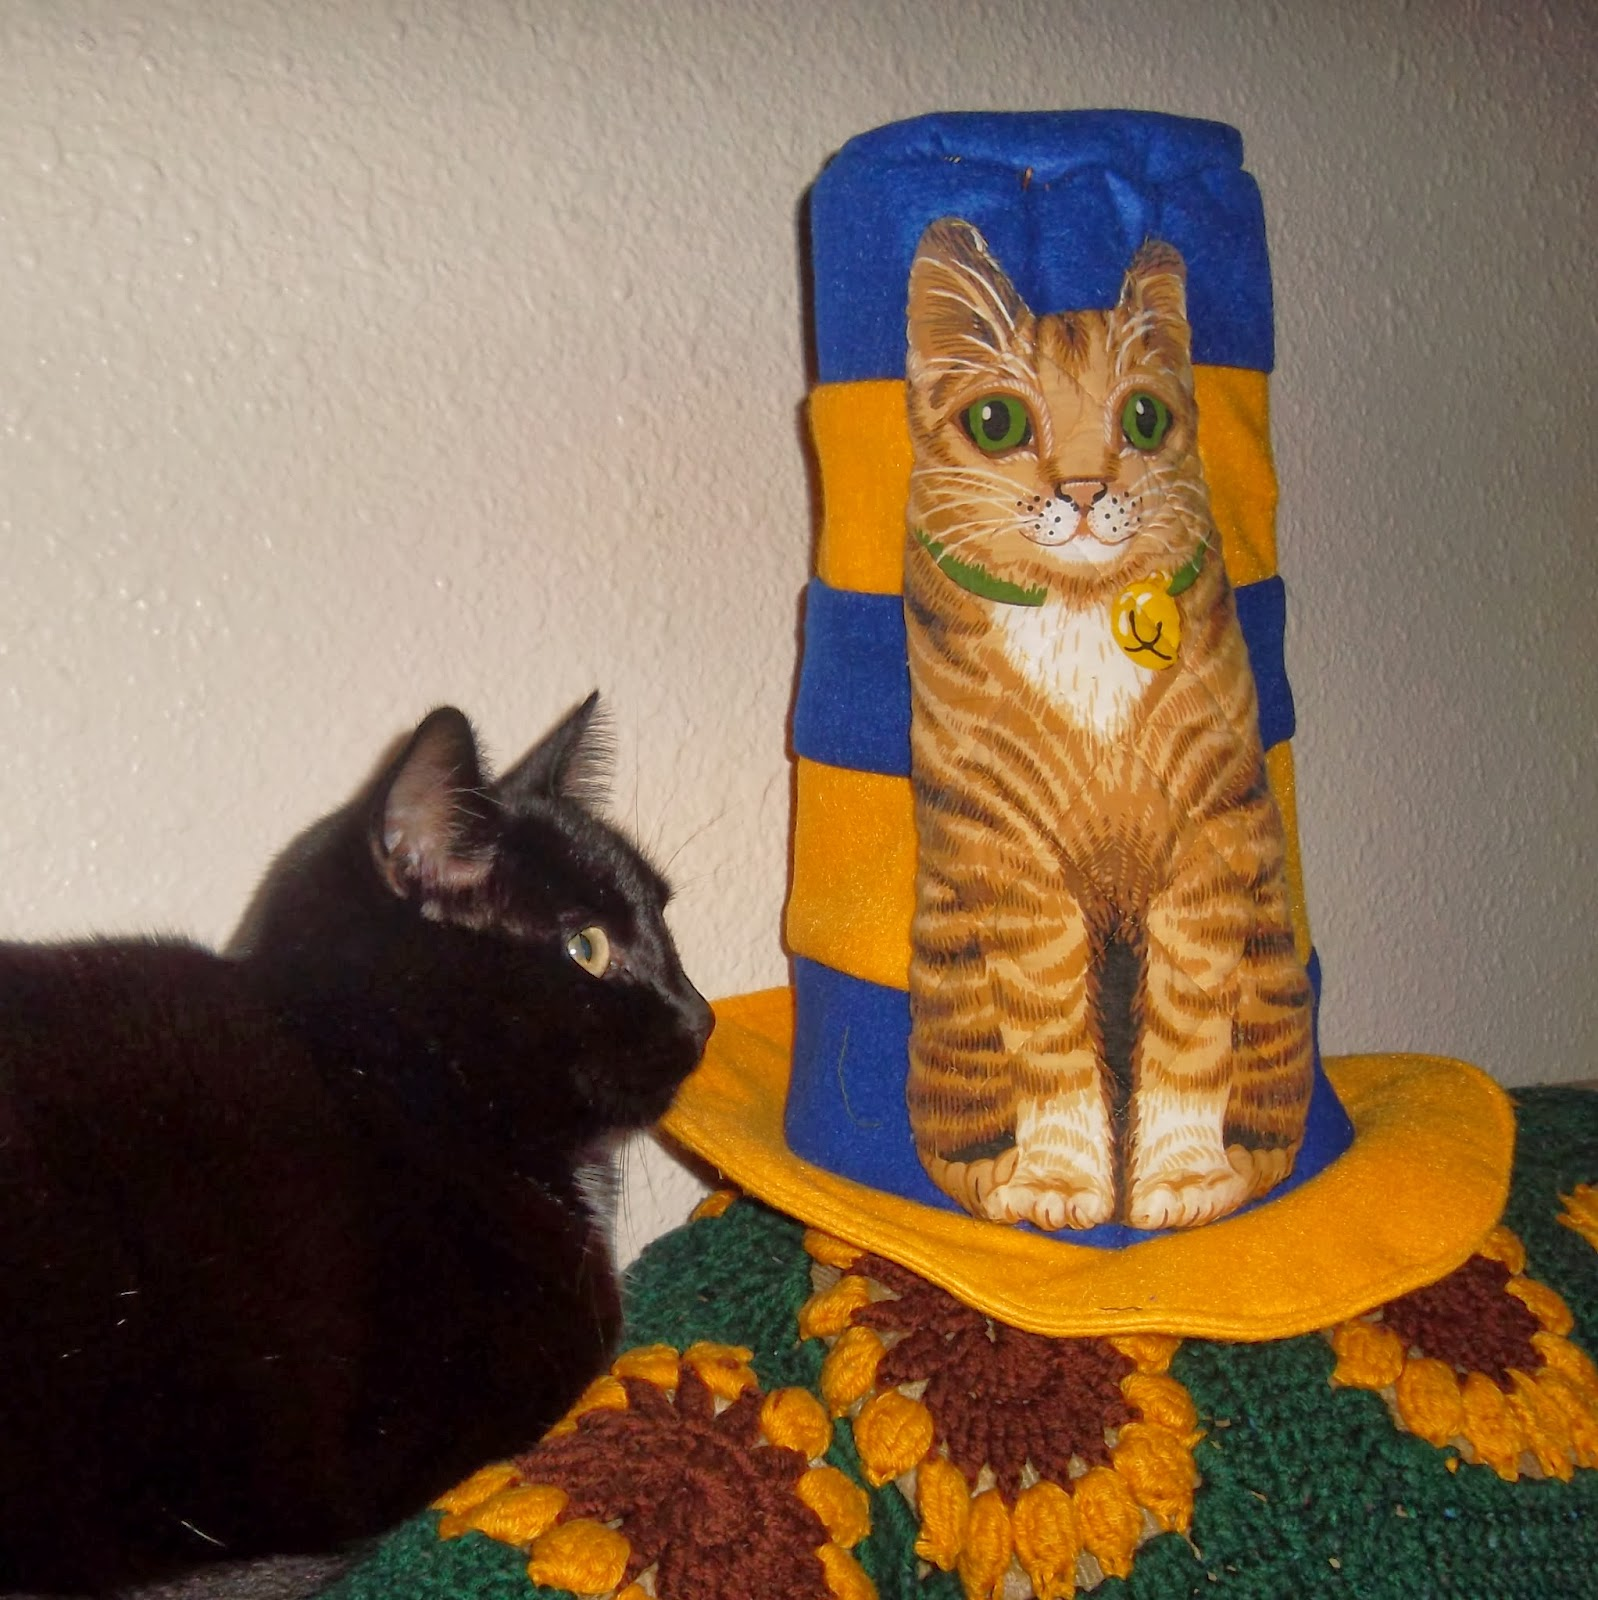 To the left, my black cat Starfire, shown in profile, faces a blue-and-gold striped 'Cat in the Hat' felt hat with a fabric-printed and quilted brown tabby cat appliqued onto it.